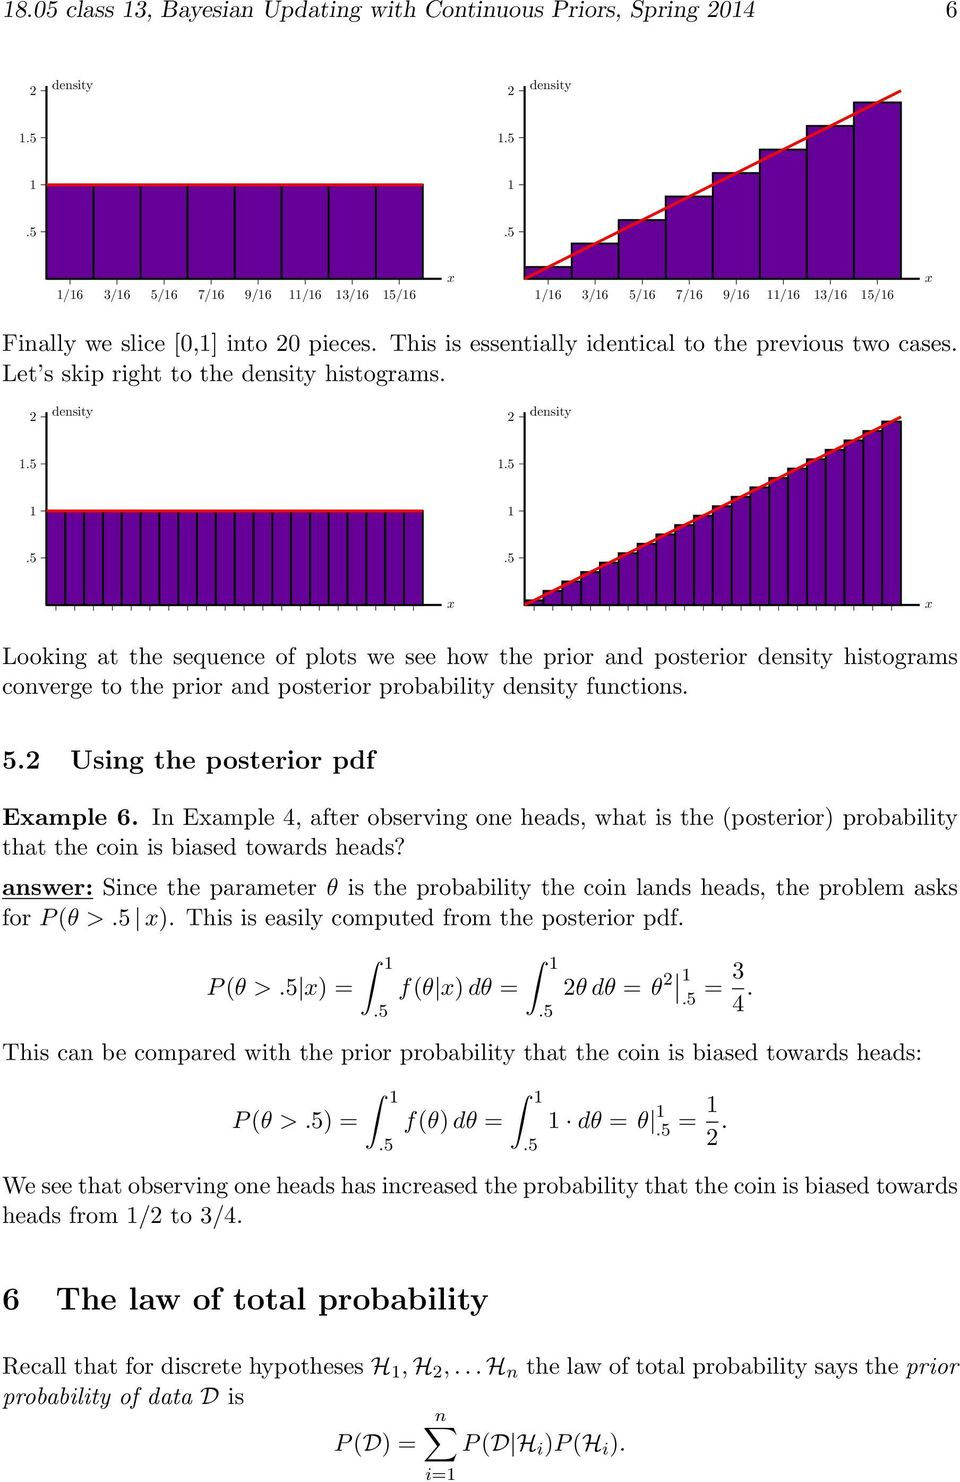 Looking t the sequence of plots we see how the prior nd posterior histogrms converge to the prior nd posterior proility functions. 5. Using the posterior pdf Emple 6.